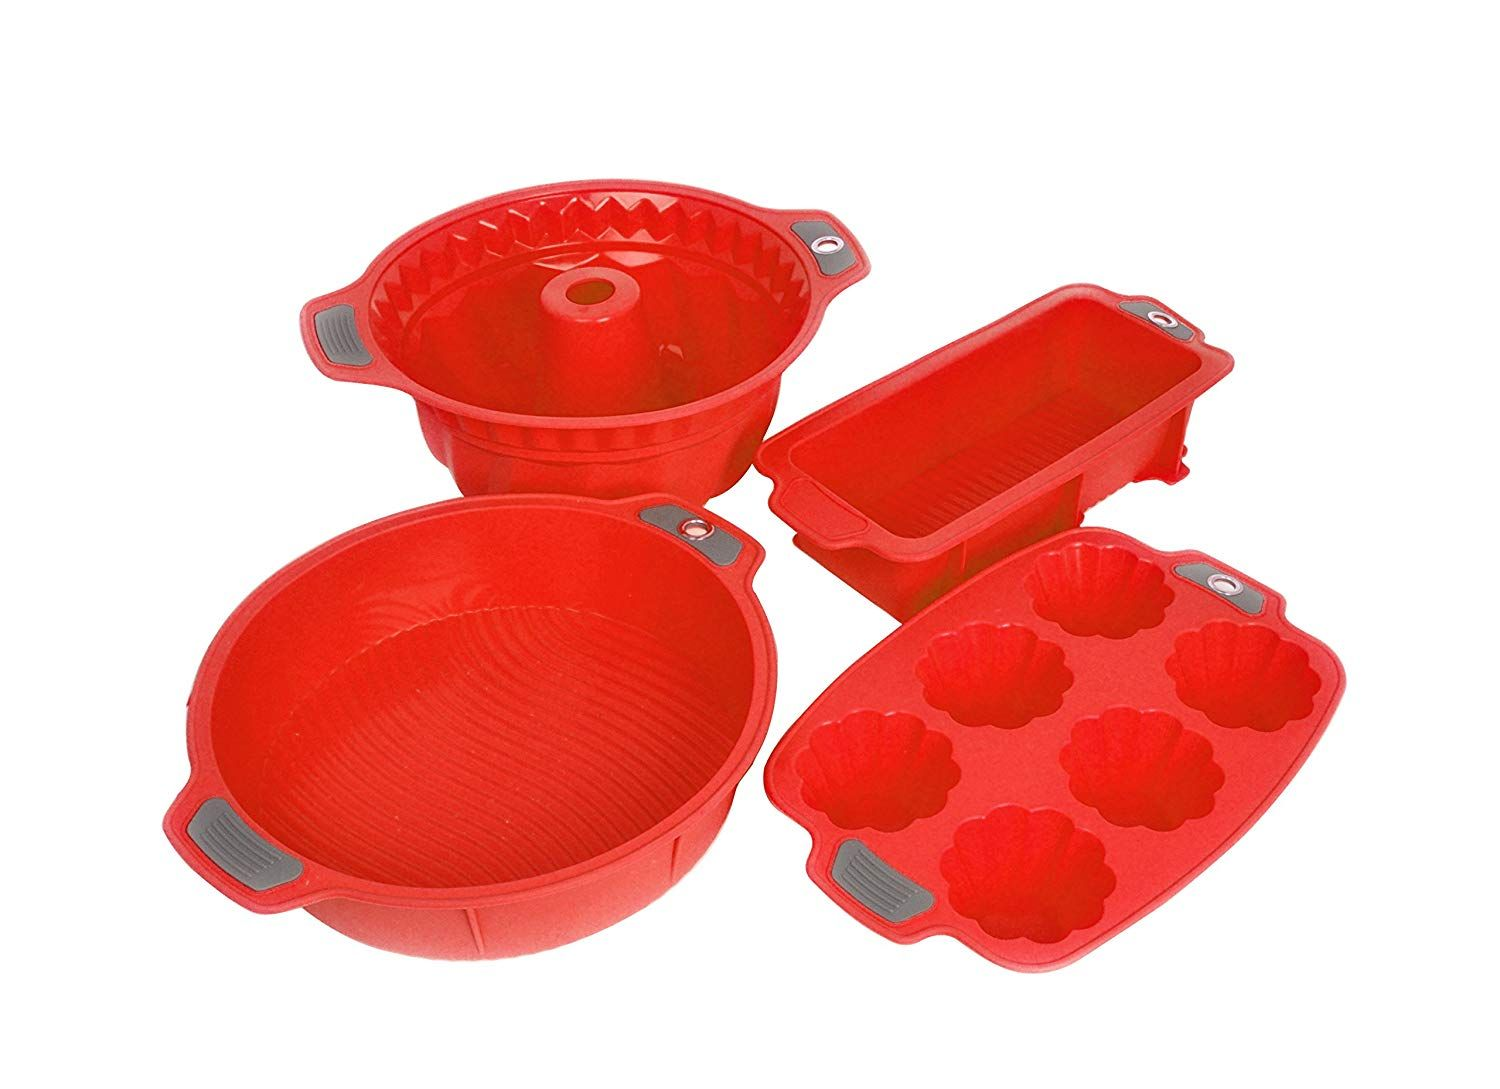 Bakeware Silicone Set Gela Cake Molds For Baking The Ideal